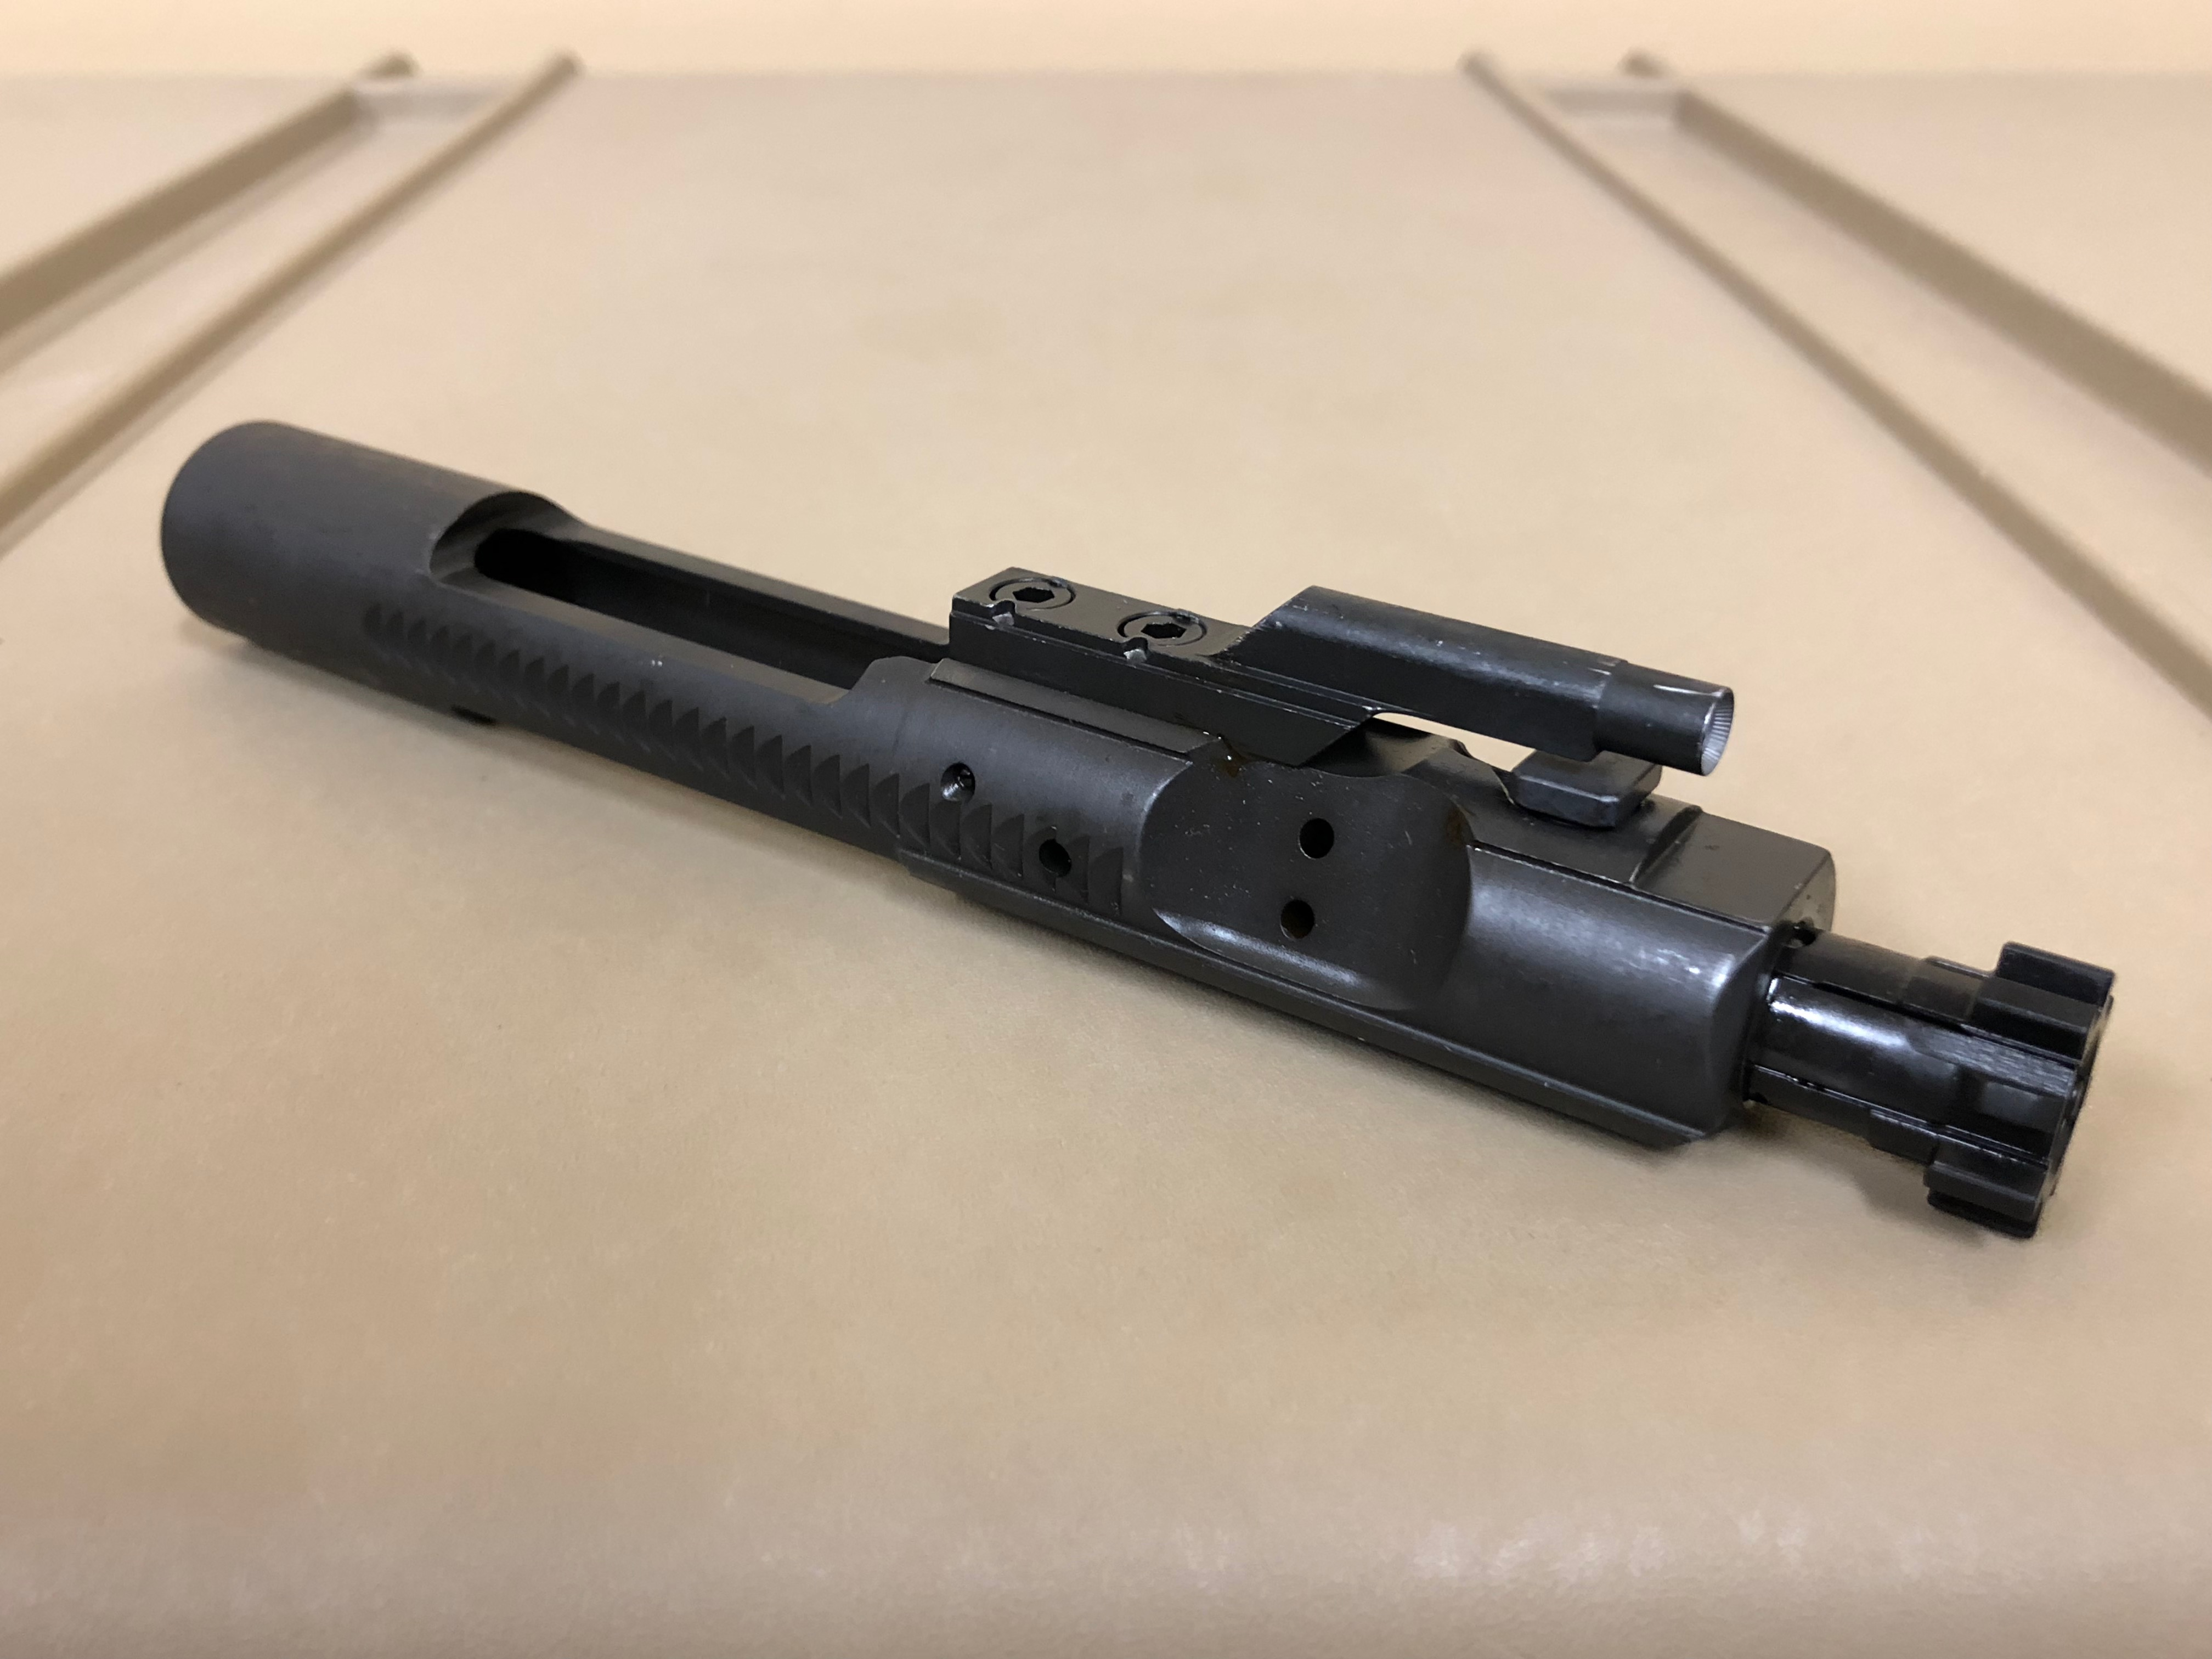 Colt M16/AR15 Complete Bolt Carrier Assembly - NEW